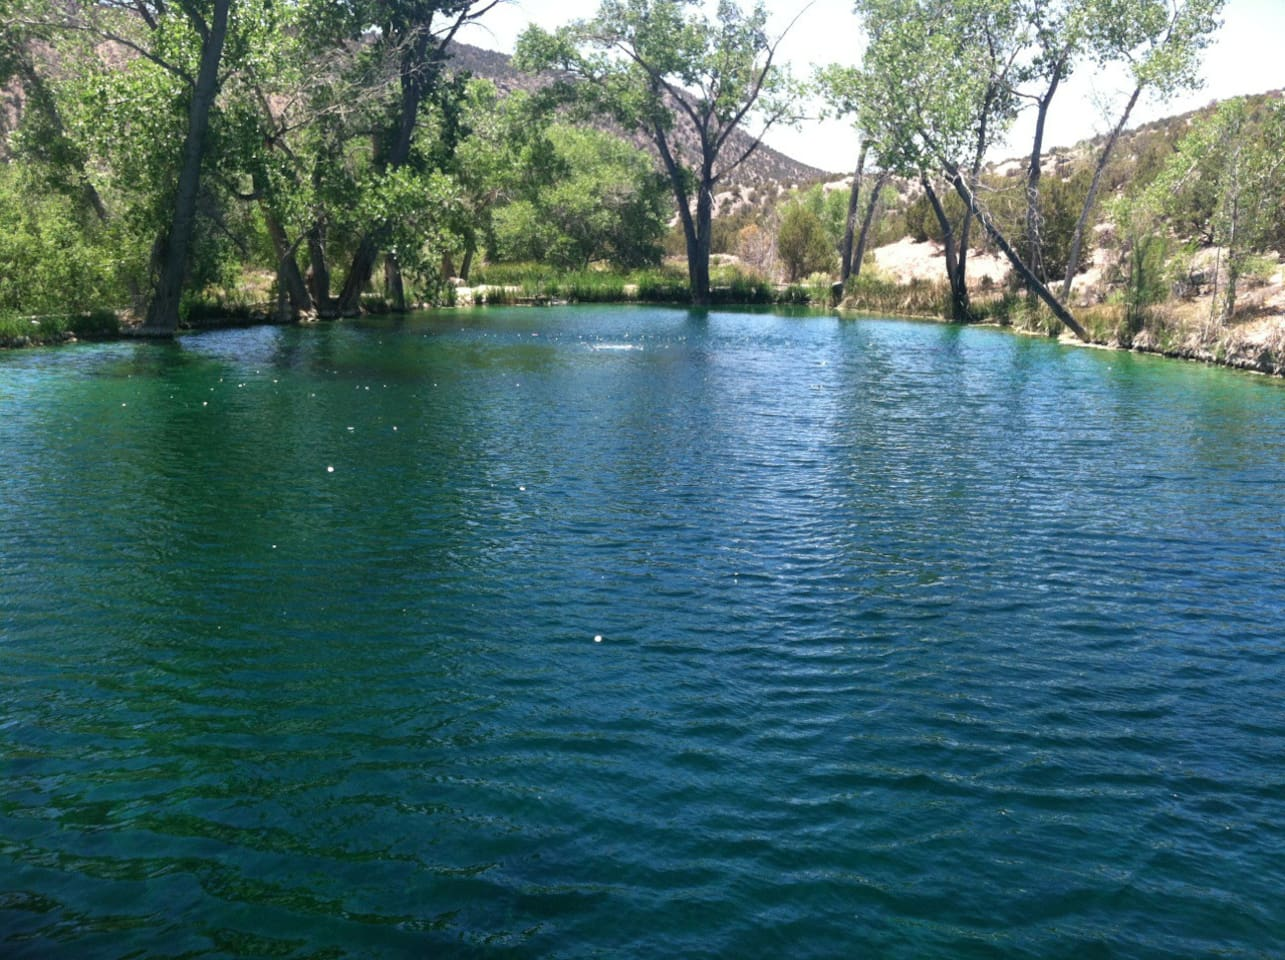 Nothing like a dip in our spring fed pond to cool off after a hike into the box canyon or along the western hills.